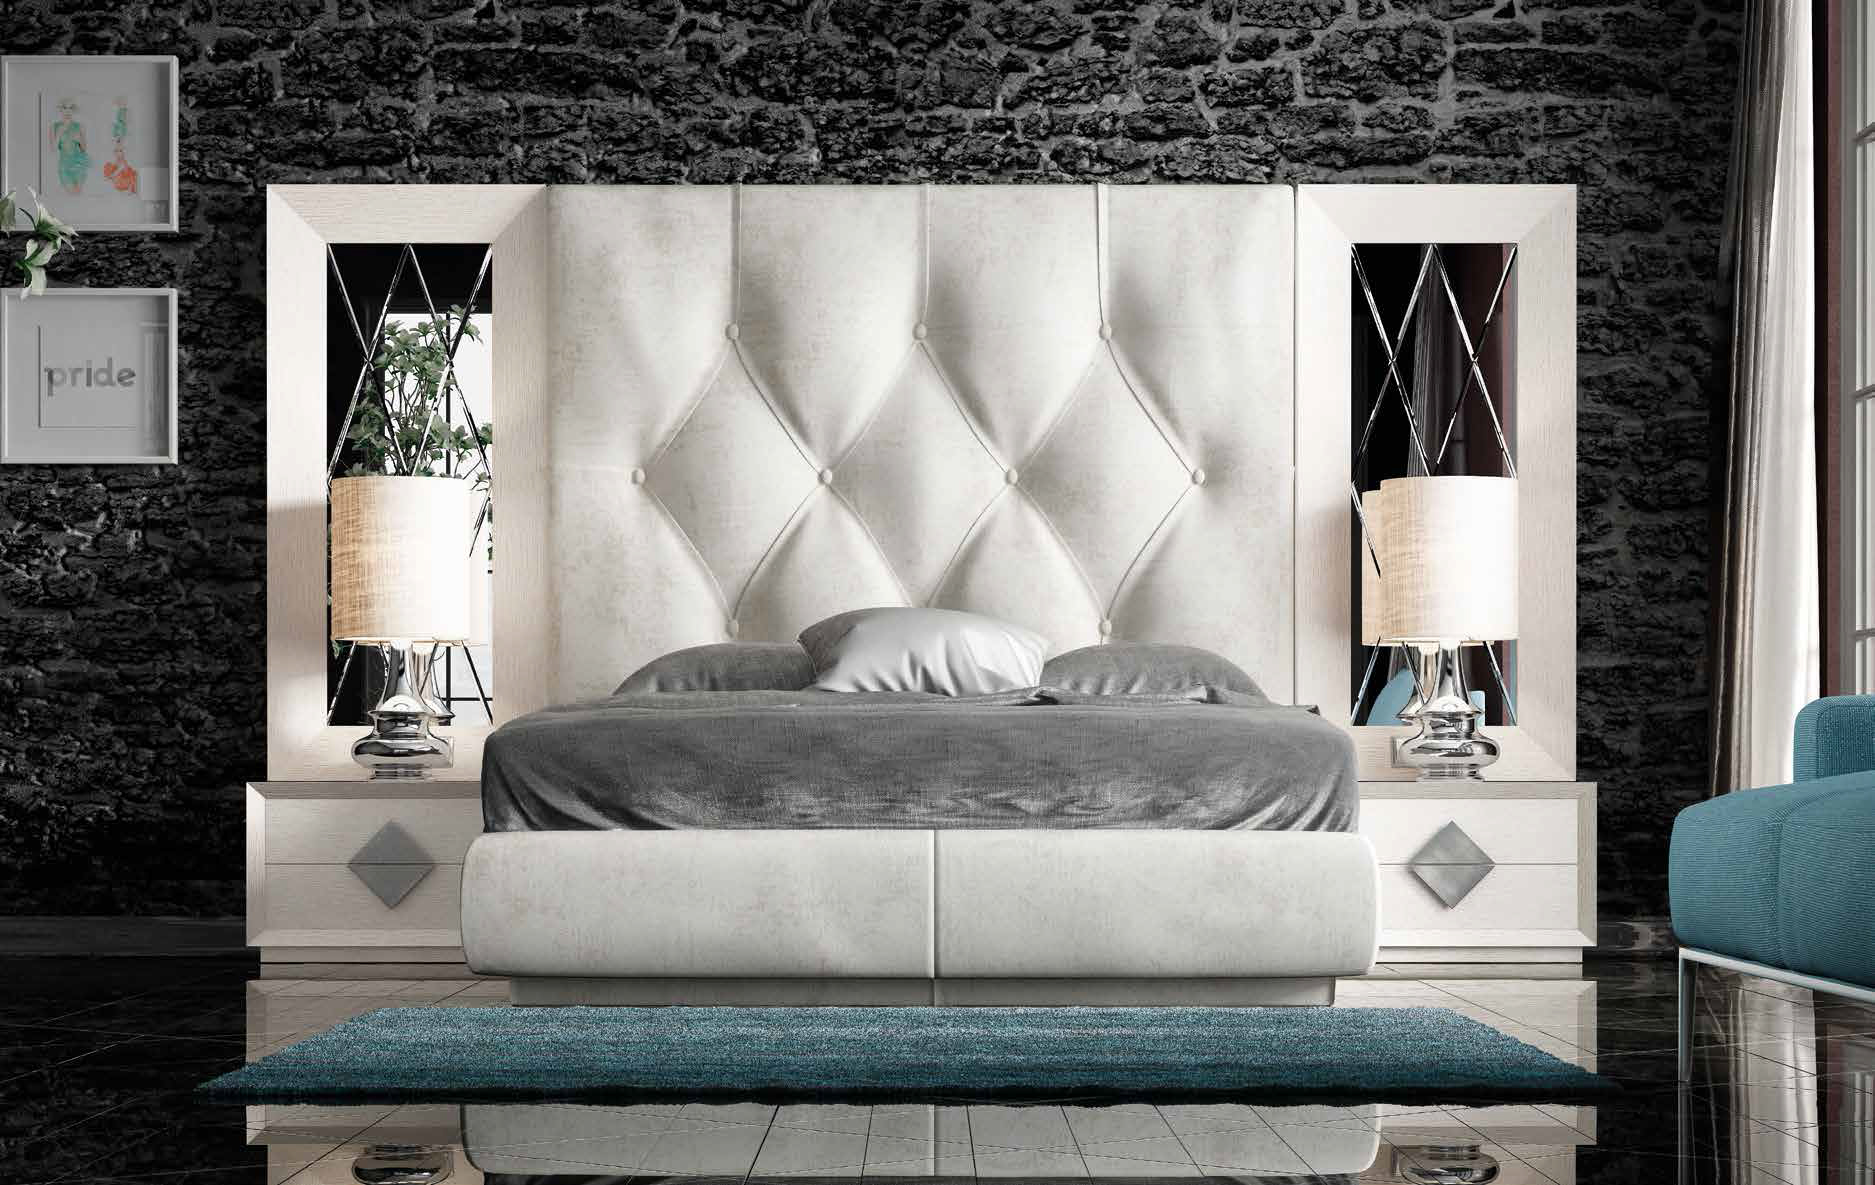 Brands Franco Furniture Bedrooms vol1, Spain DOR 71